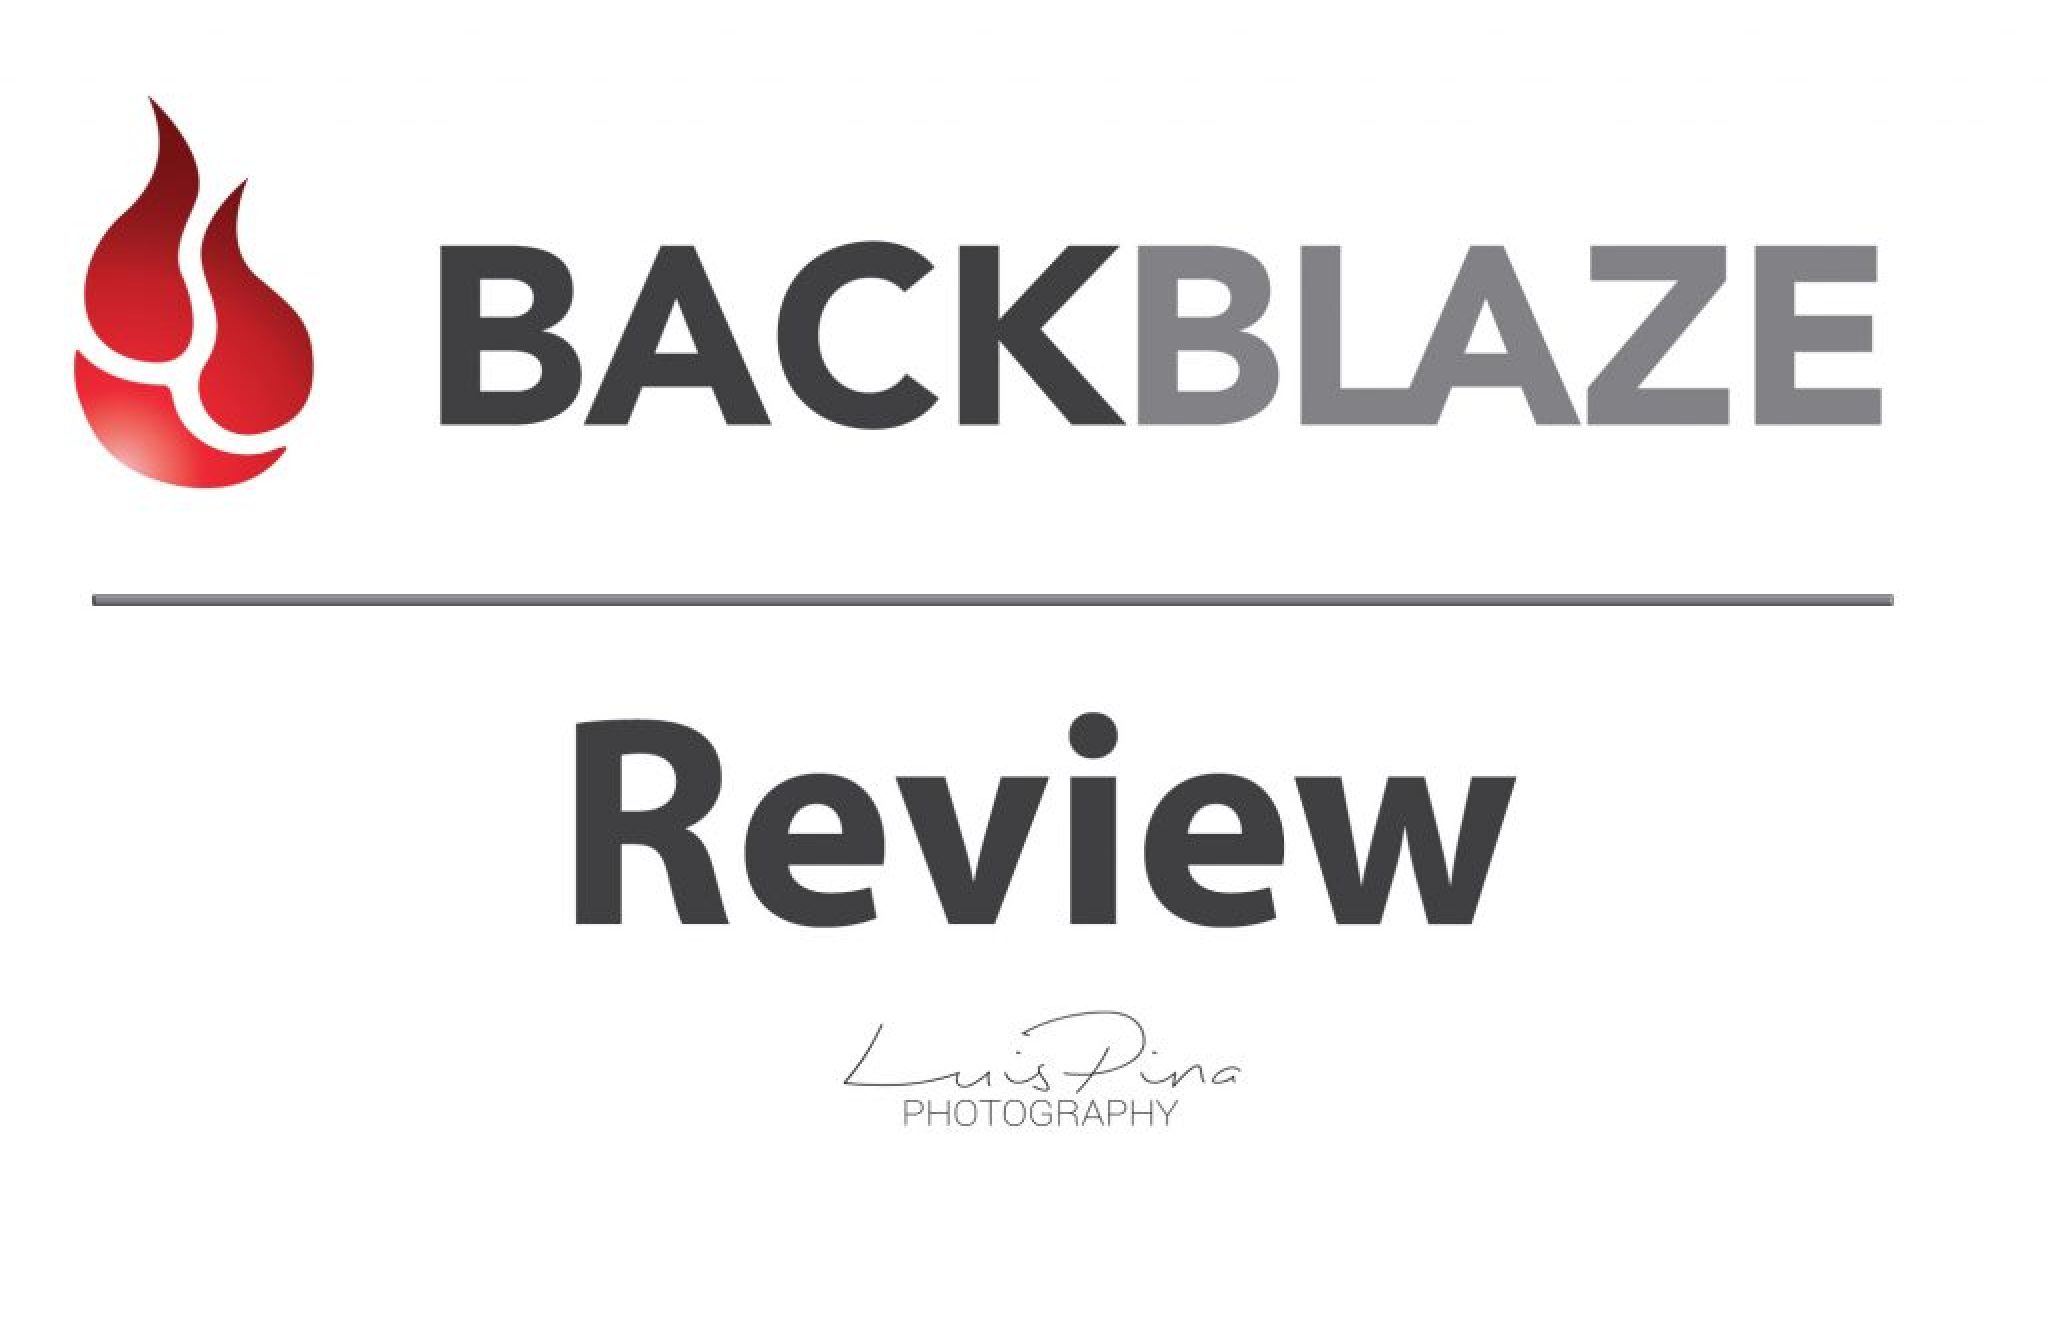 Backblaze Backup Review